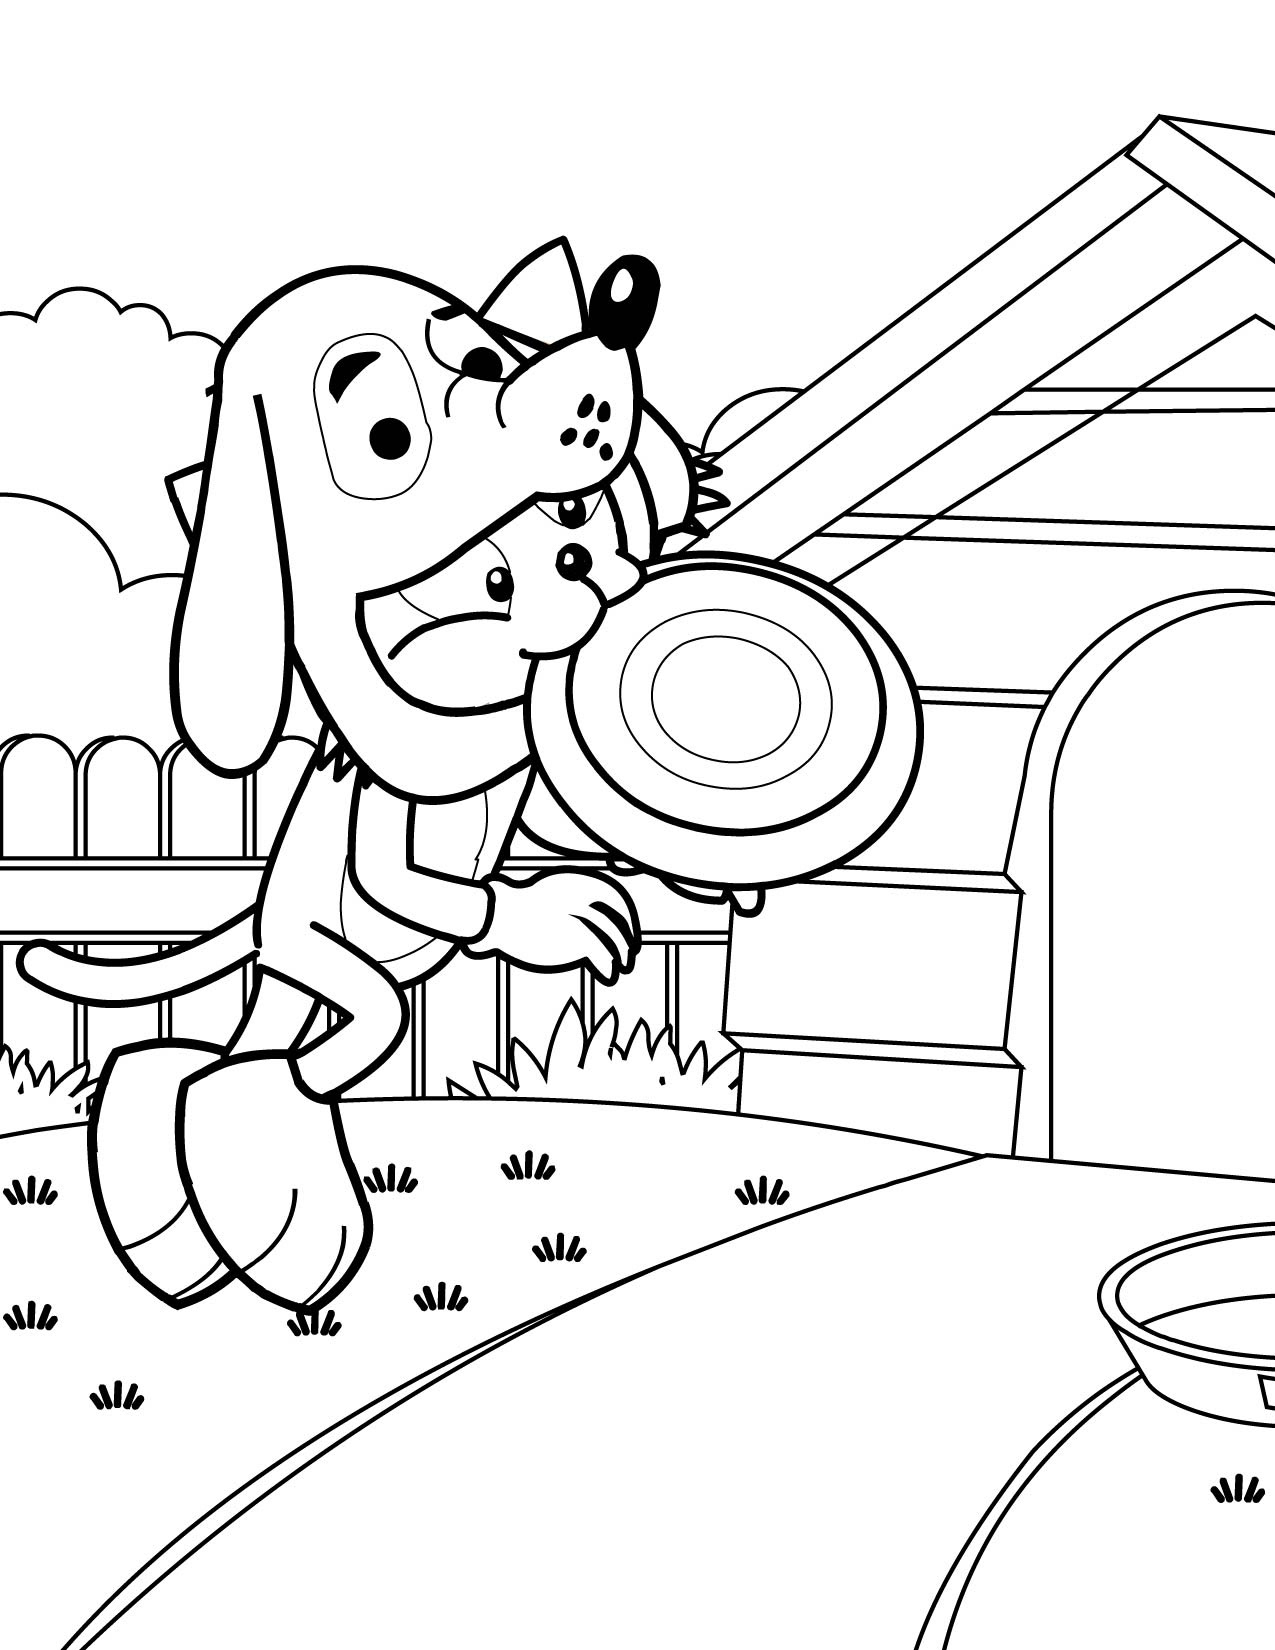 Handipoints Coloring Pages - PrimaryGames.com